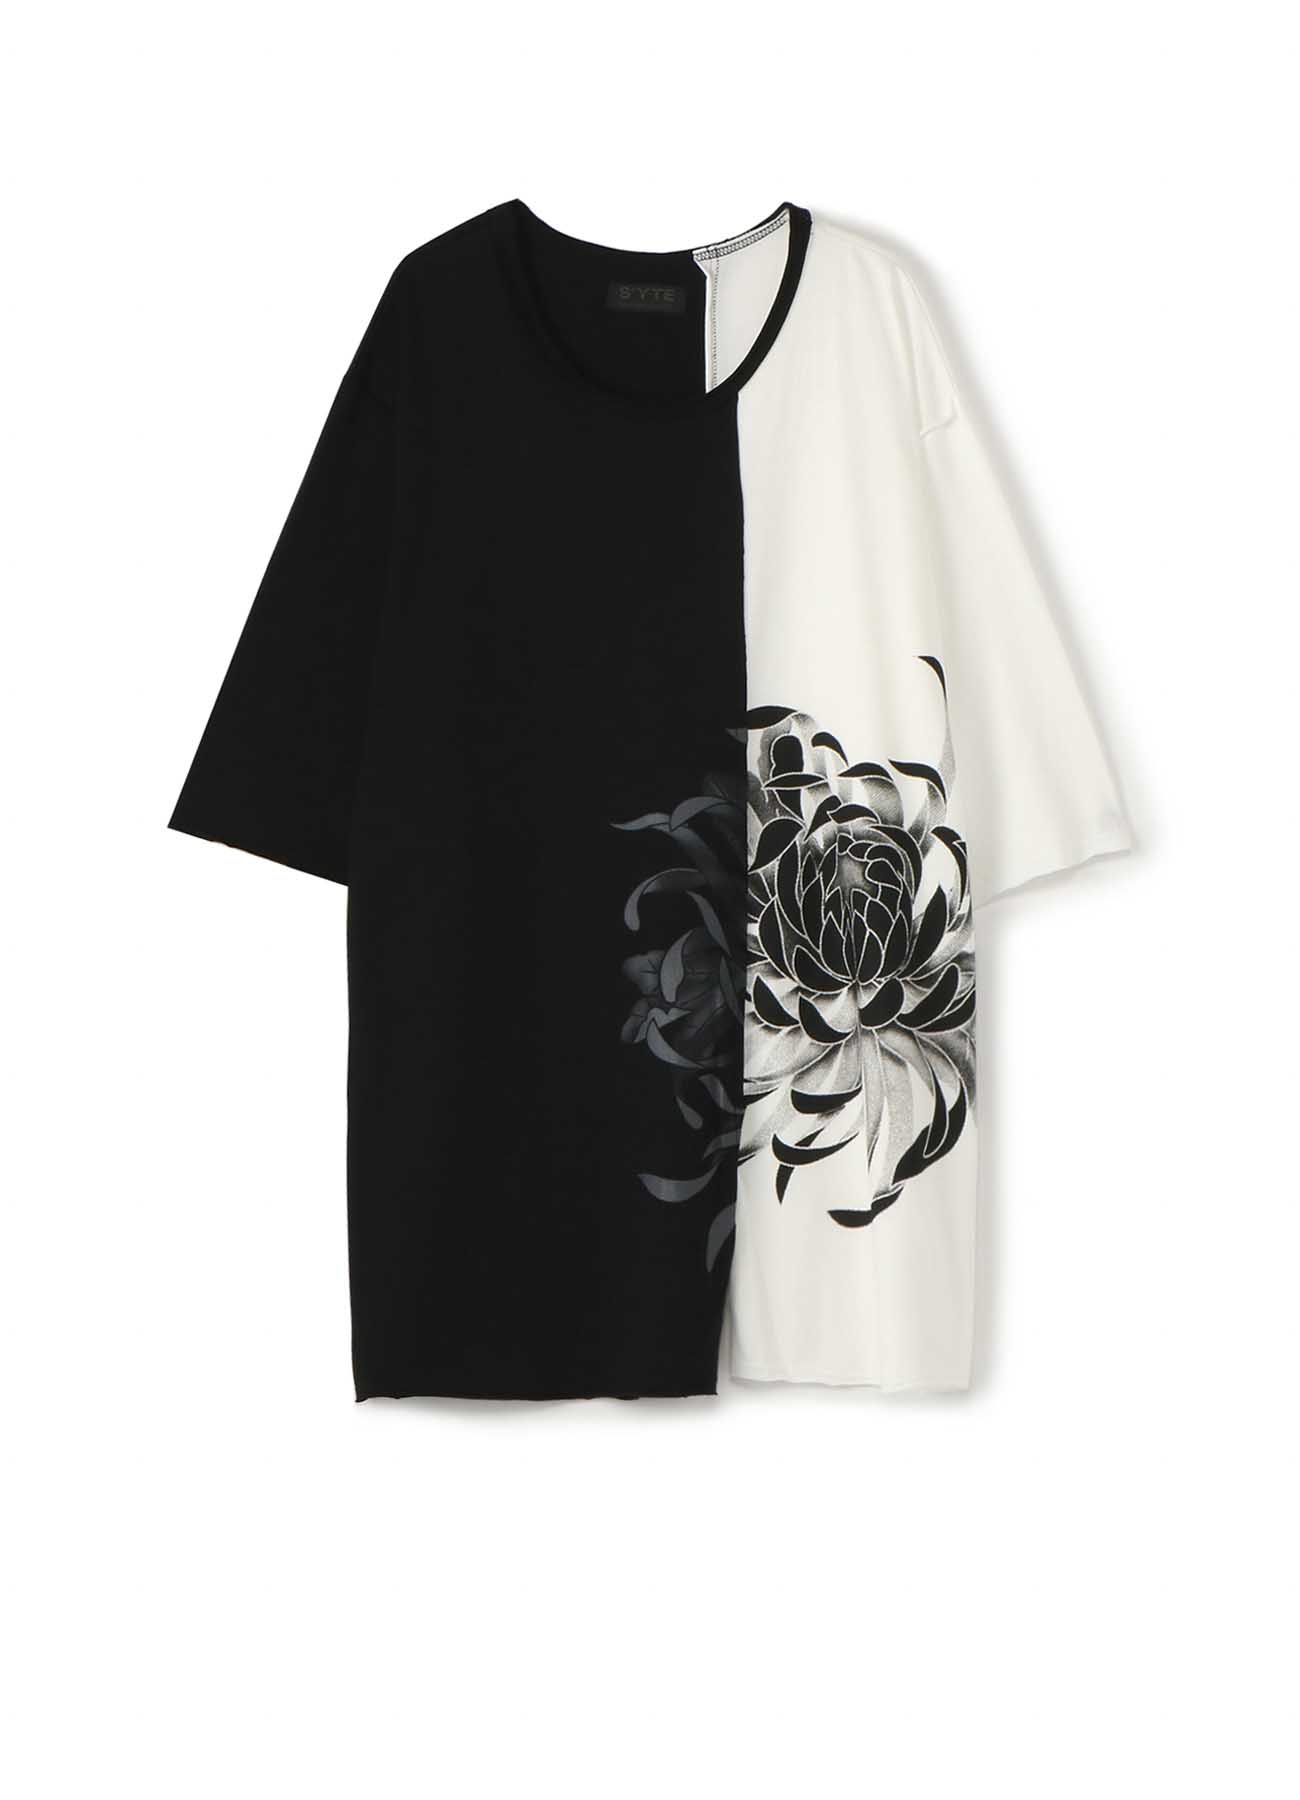 40/2 Cotton Jersey Stitching Slit Big Flower Black & White T-shirt